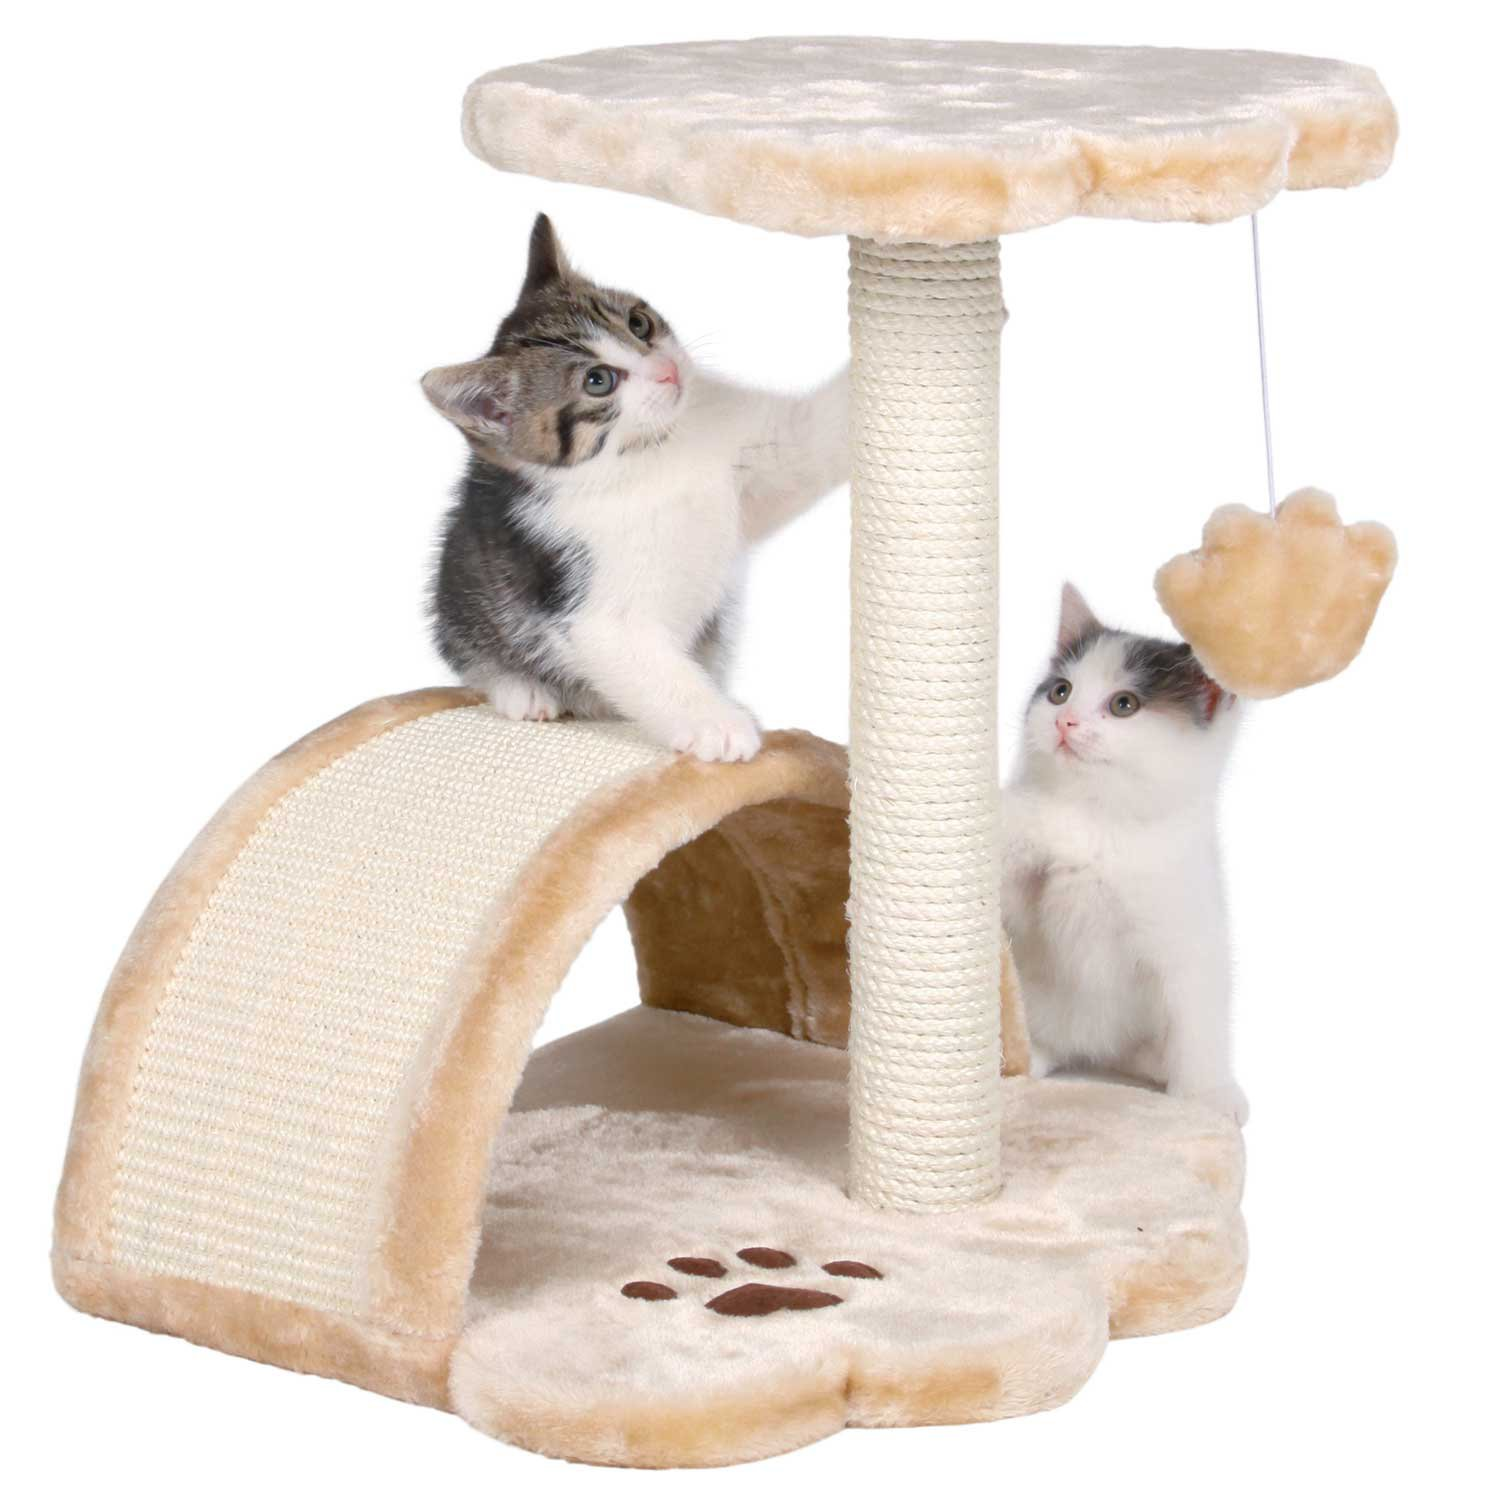 Kitten Scratching furniture